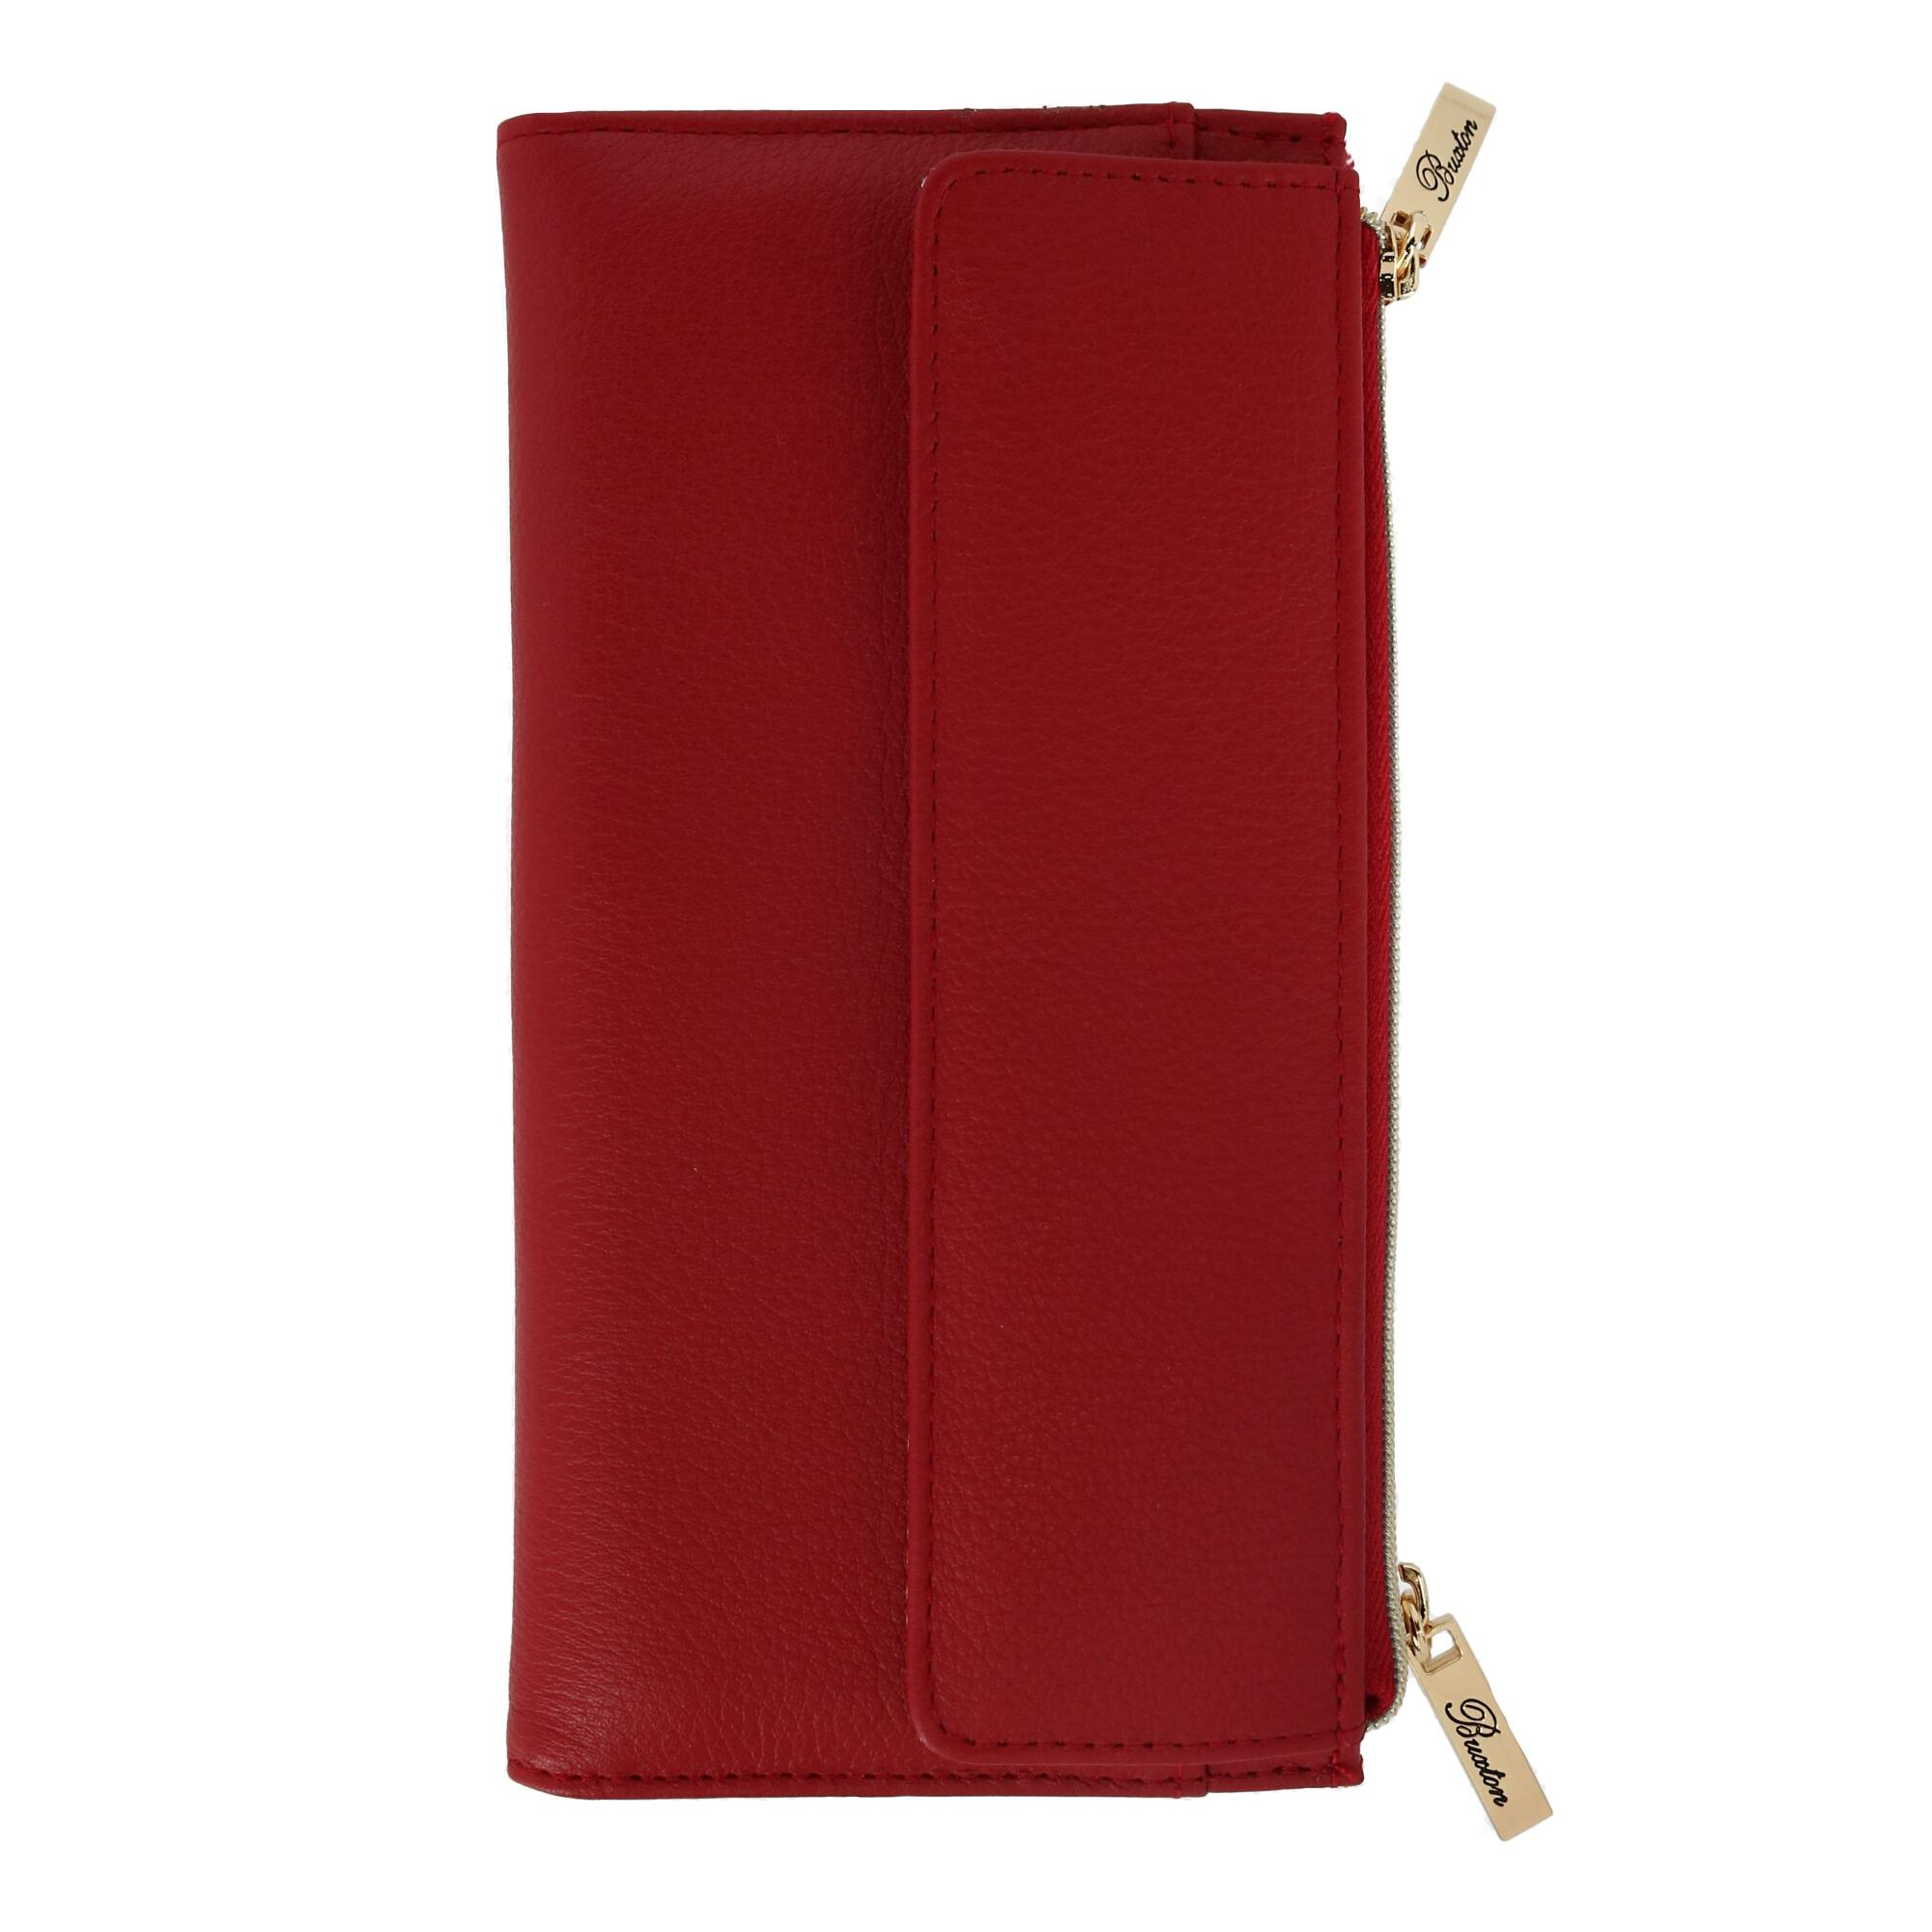 New Buxton Women's Leather Long Bifold Wallet with Snap Clos